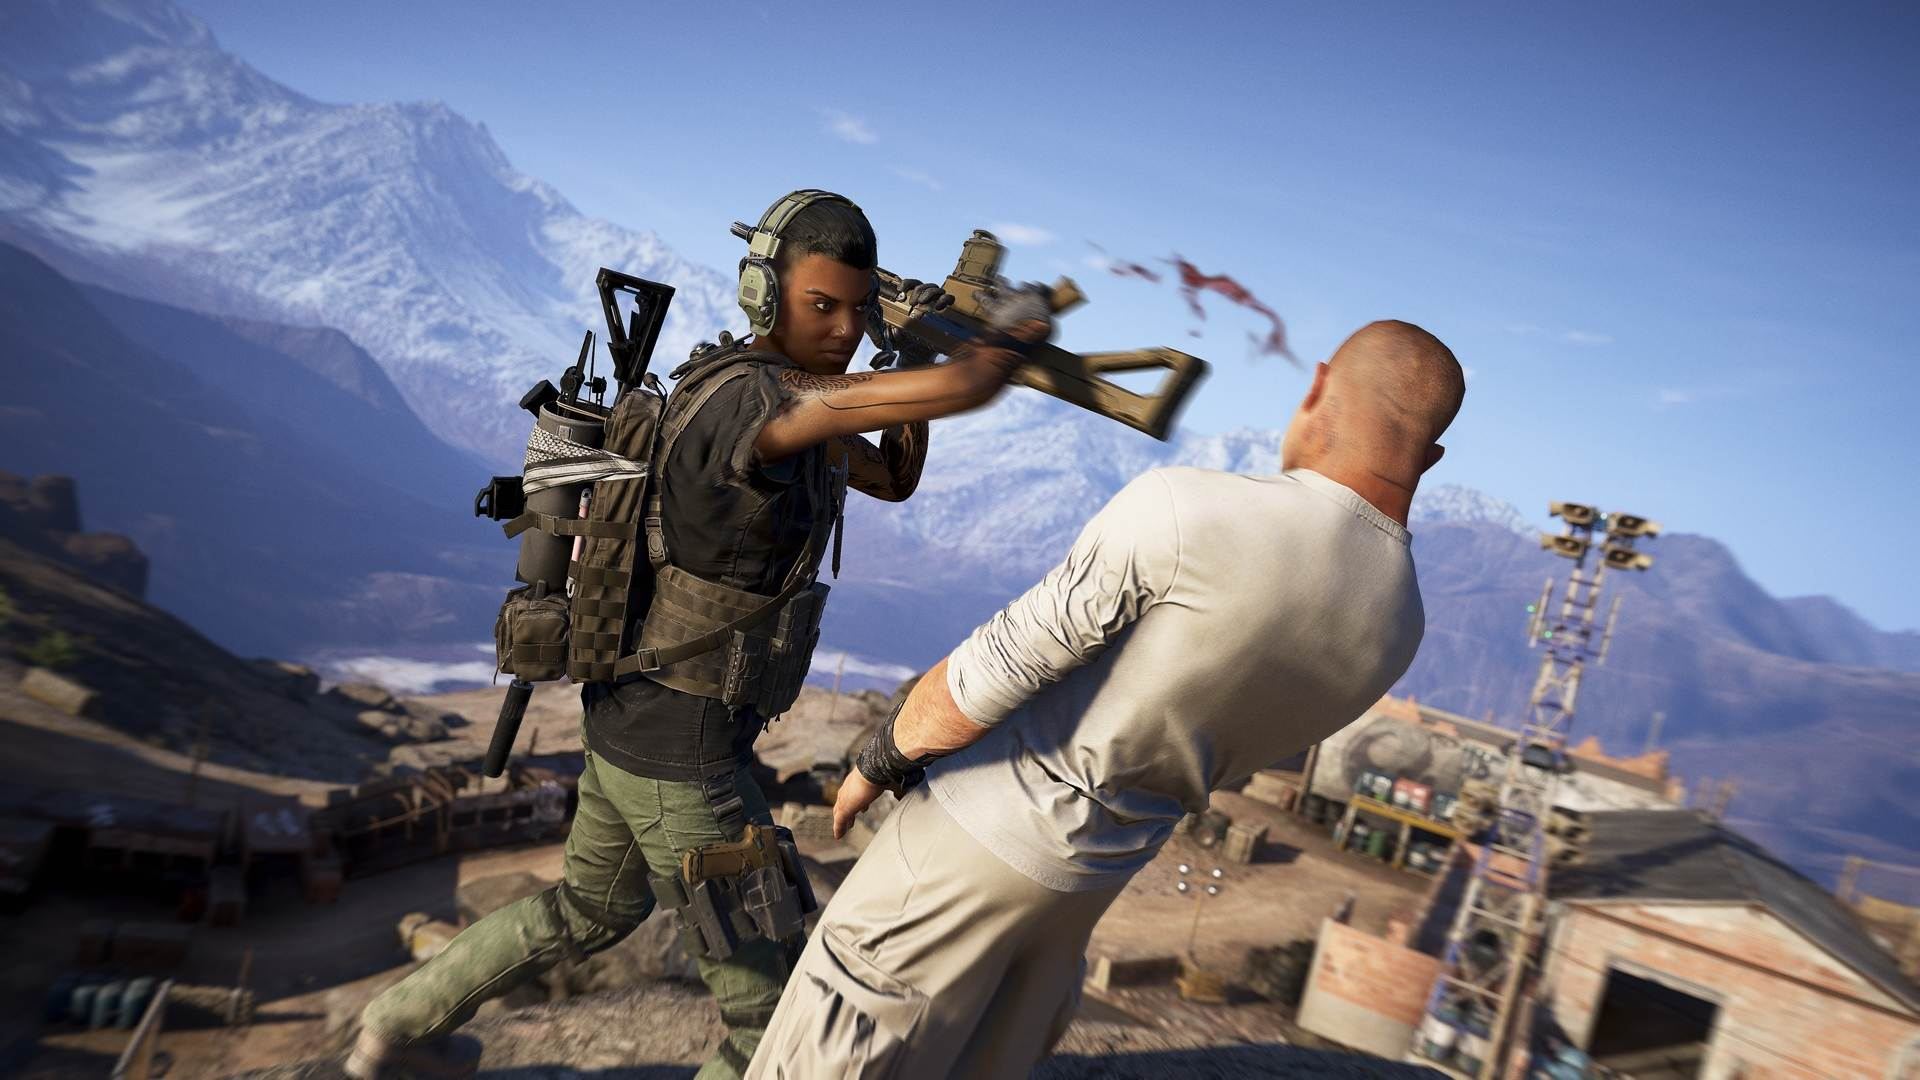 Ghost Recon: Wildlands PvP Mode Finally Gets Open Beta Next Week